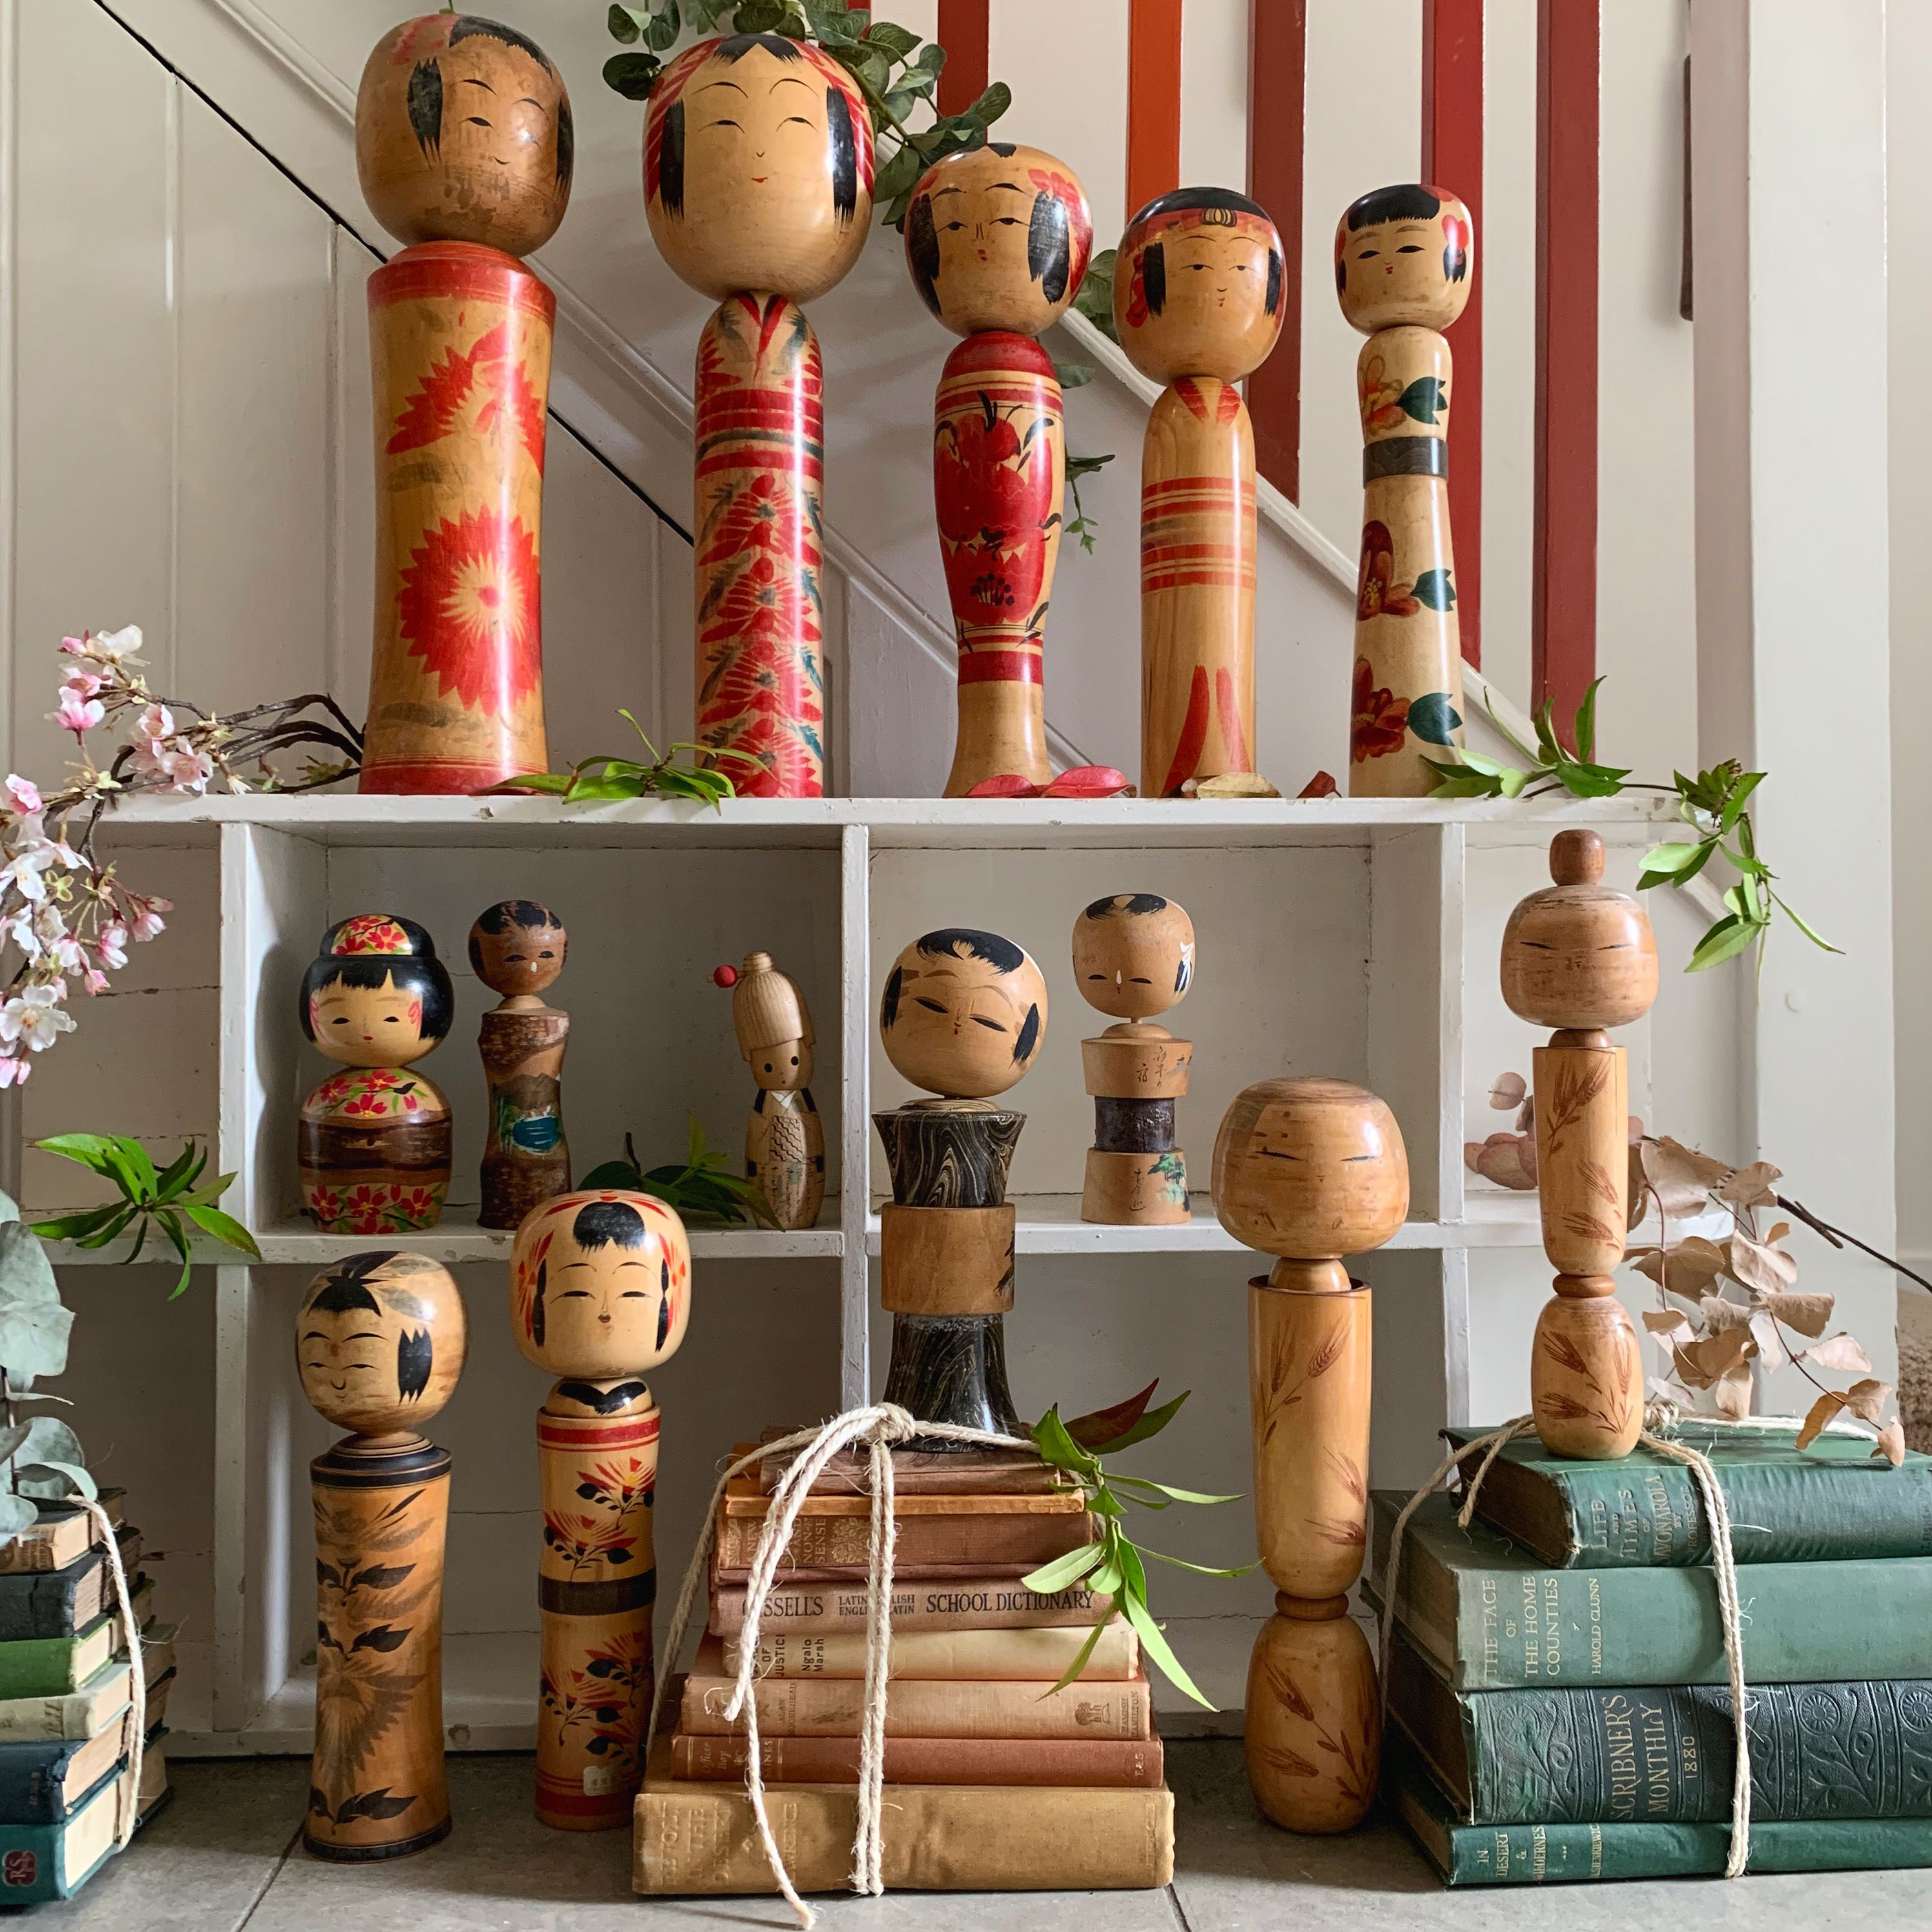 I live kokeshi dolls.  They have been crafted for more than 150 years, each one is unique and they are thought to bring good luck and protection to the home. A wonderful decorative accessory  - collect a few of these wonderful dolls or add it to a sideboard or shelf with other quirky accessories. #vintagehomedecor #kokeshidolls #vintagehome #antiquedecor